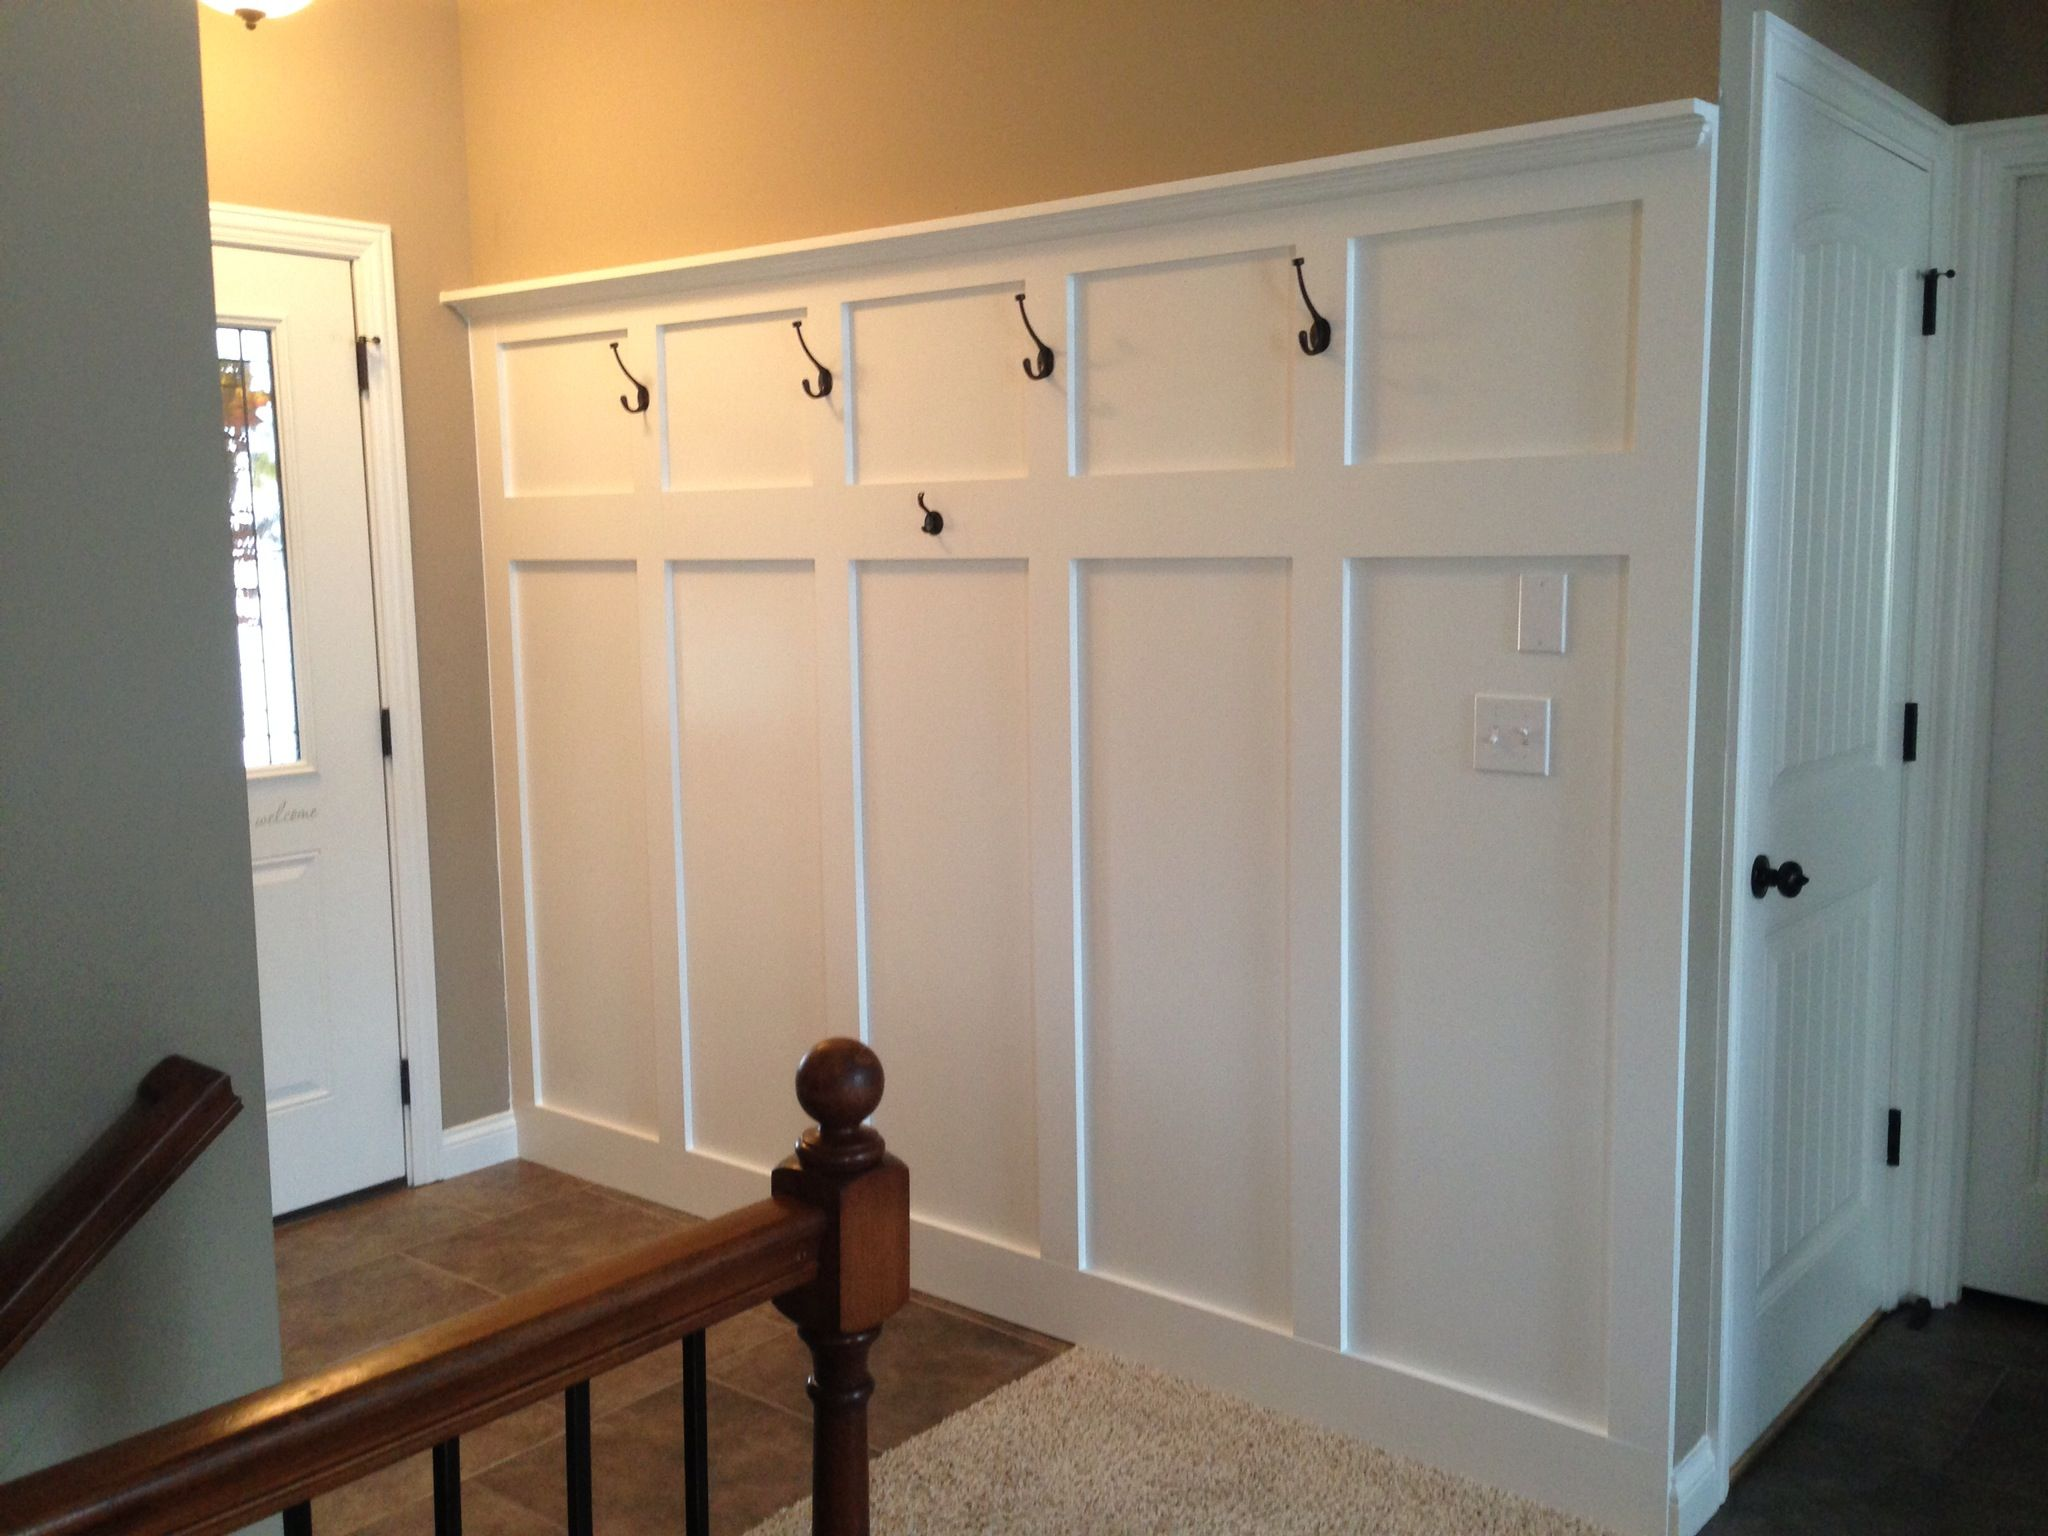 Entryway wainscoting with hooks for coats and a shelf for ...